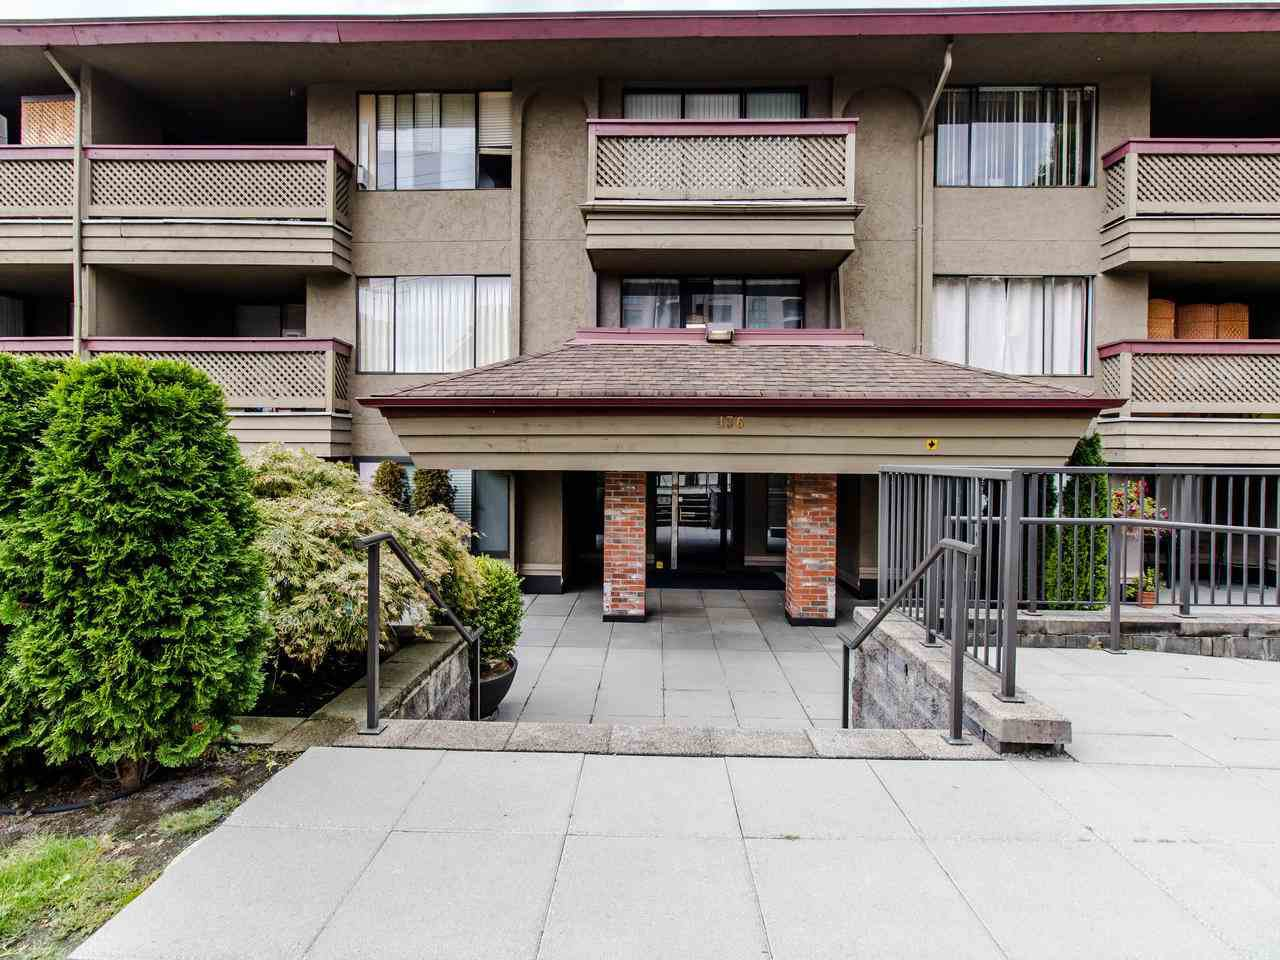 """Main Photo: 314 436 SEVENTH Street in New Westminster: Uptown NW Condo for sale in """"Regency court"""" : MLS®# R2404787"""